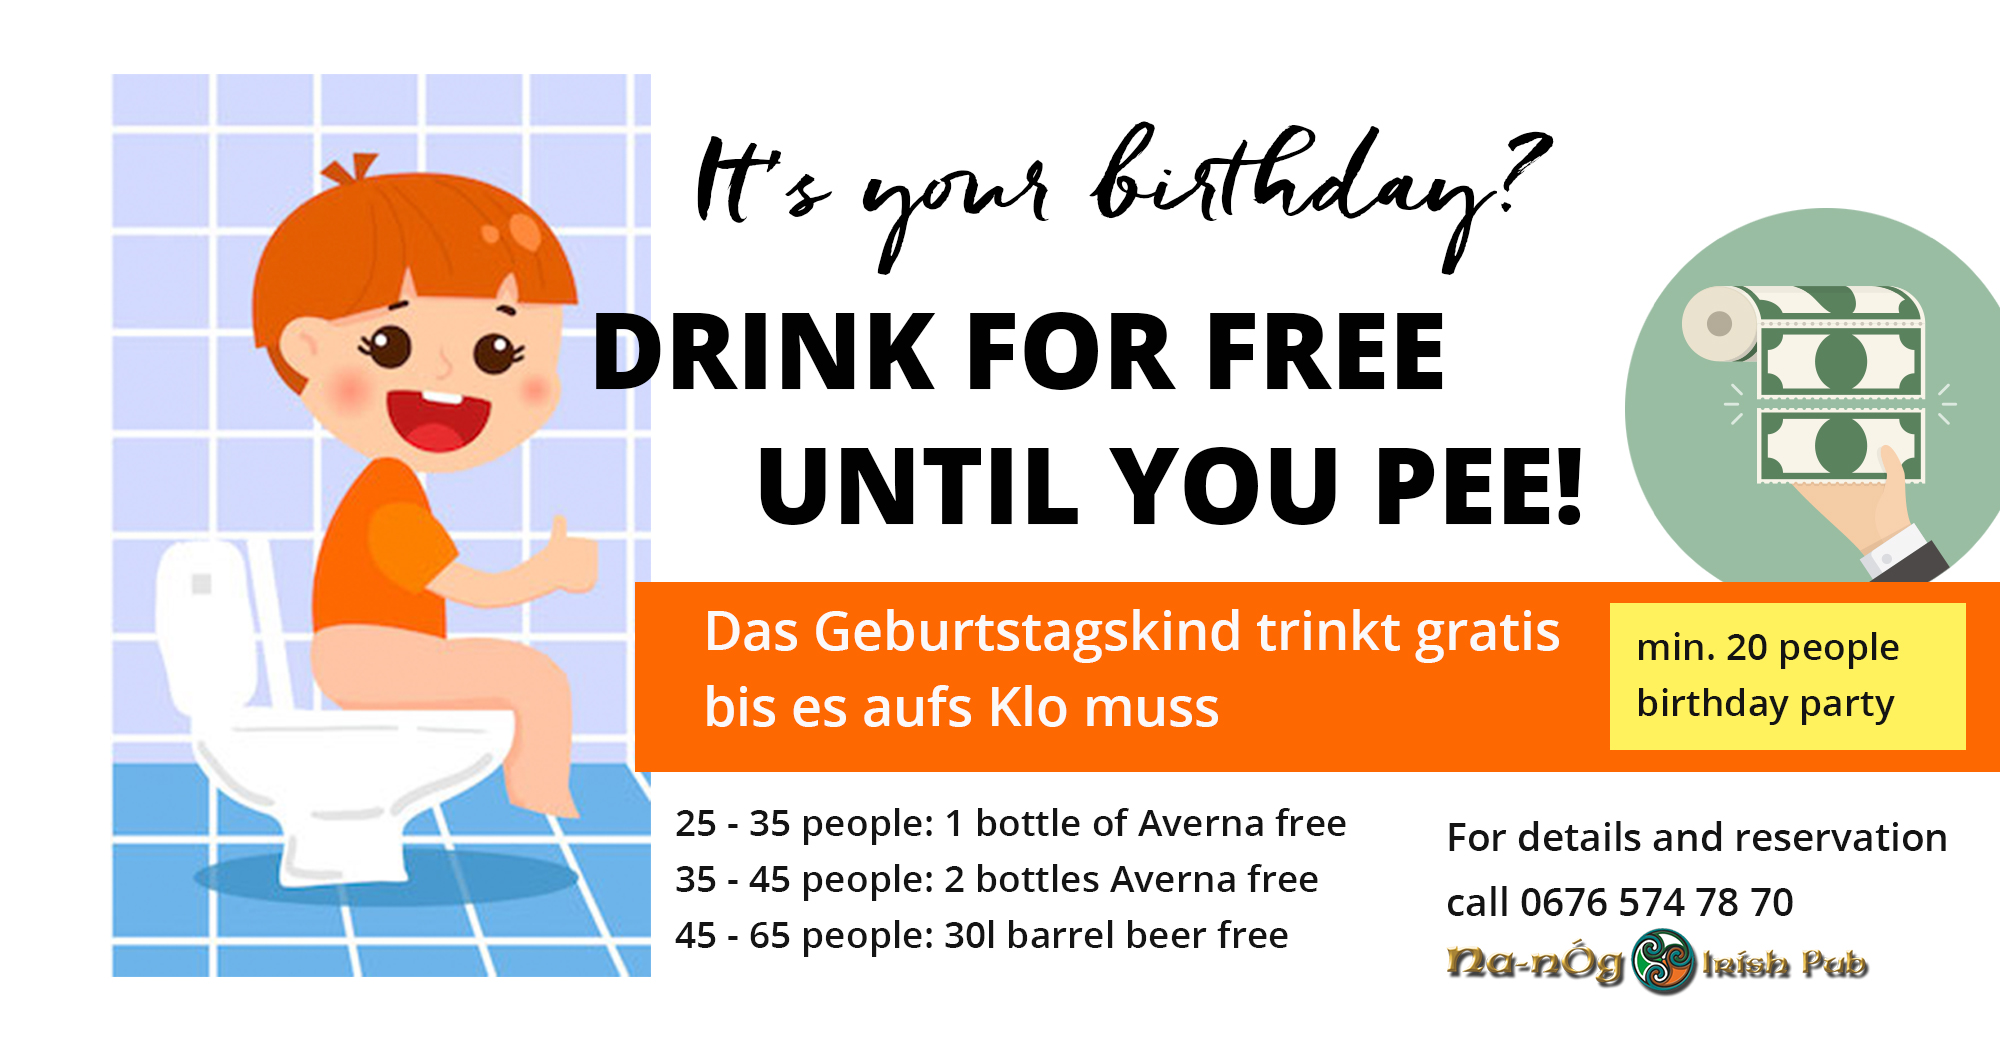 Drink for free until you pee